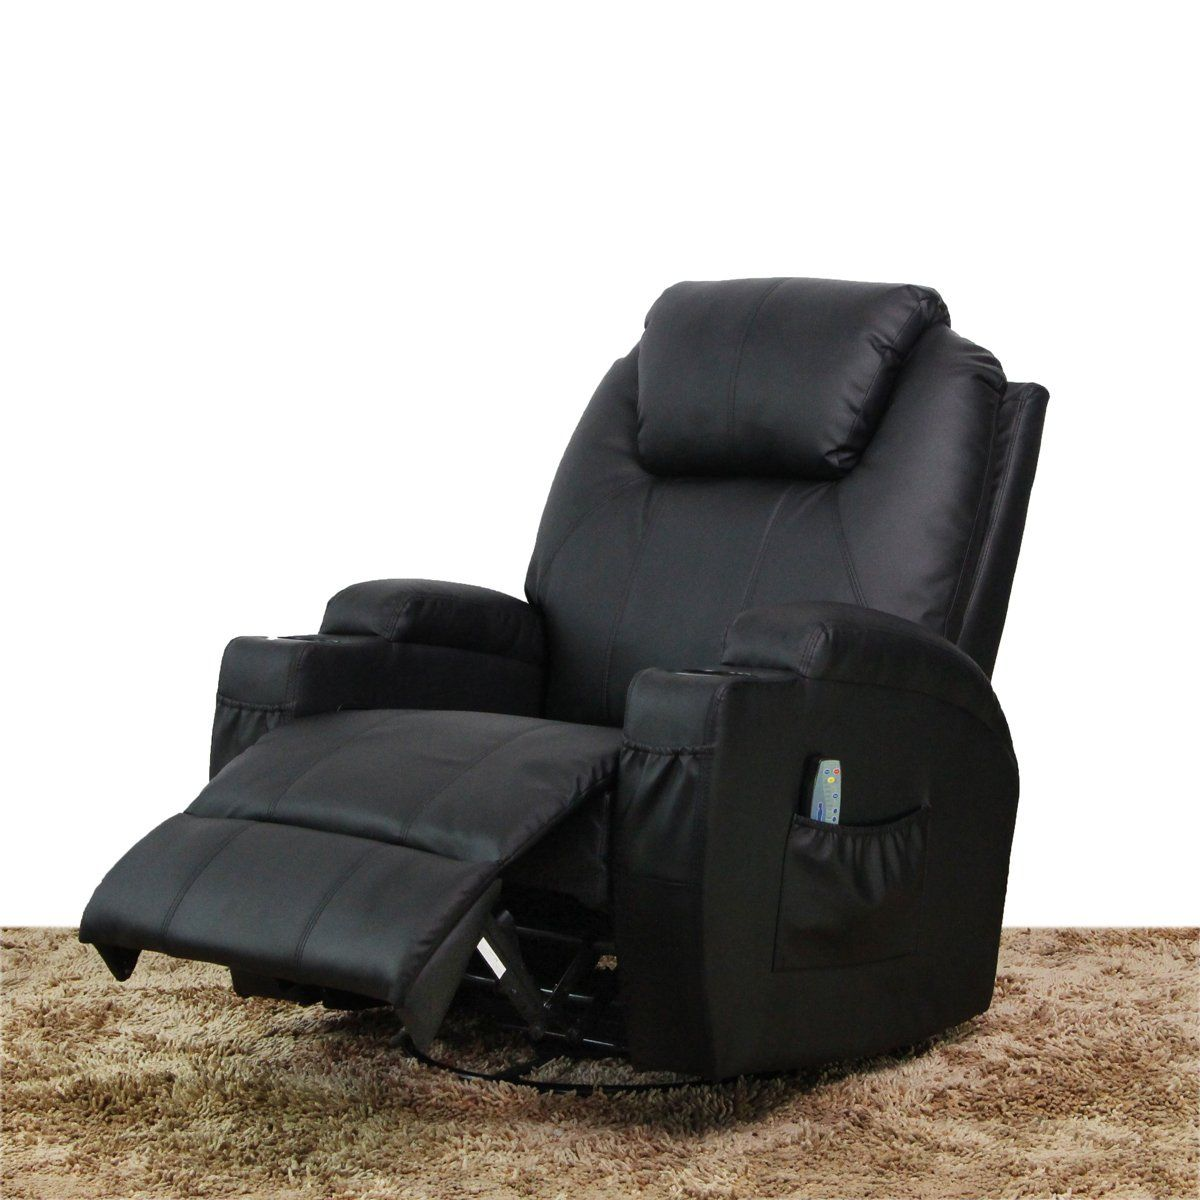 Groovy Umax Heated Pu Leather Massage Recliner Chair With Control Dailytribune Chair Design For Home Dailytribuneorg